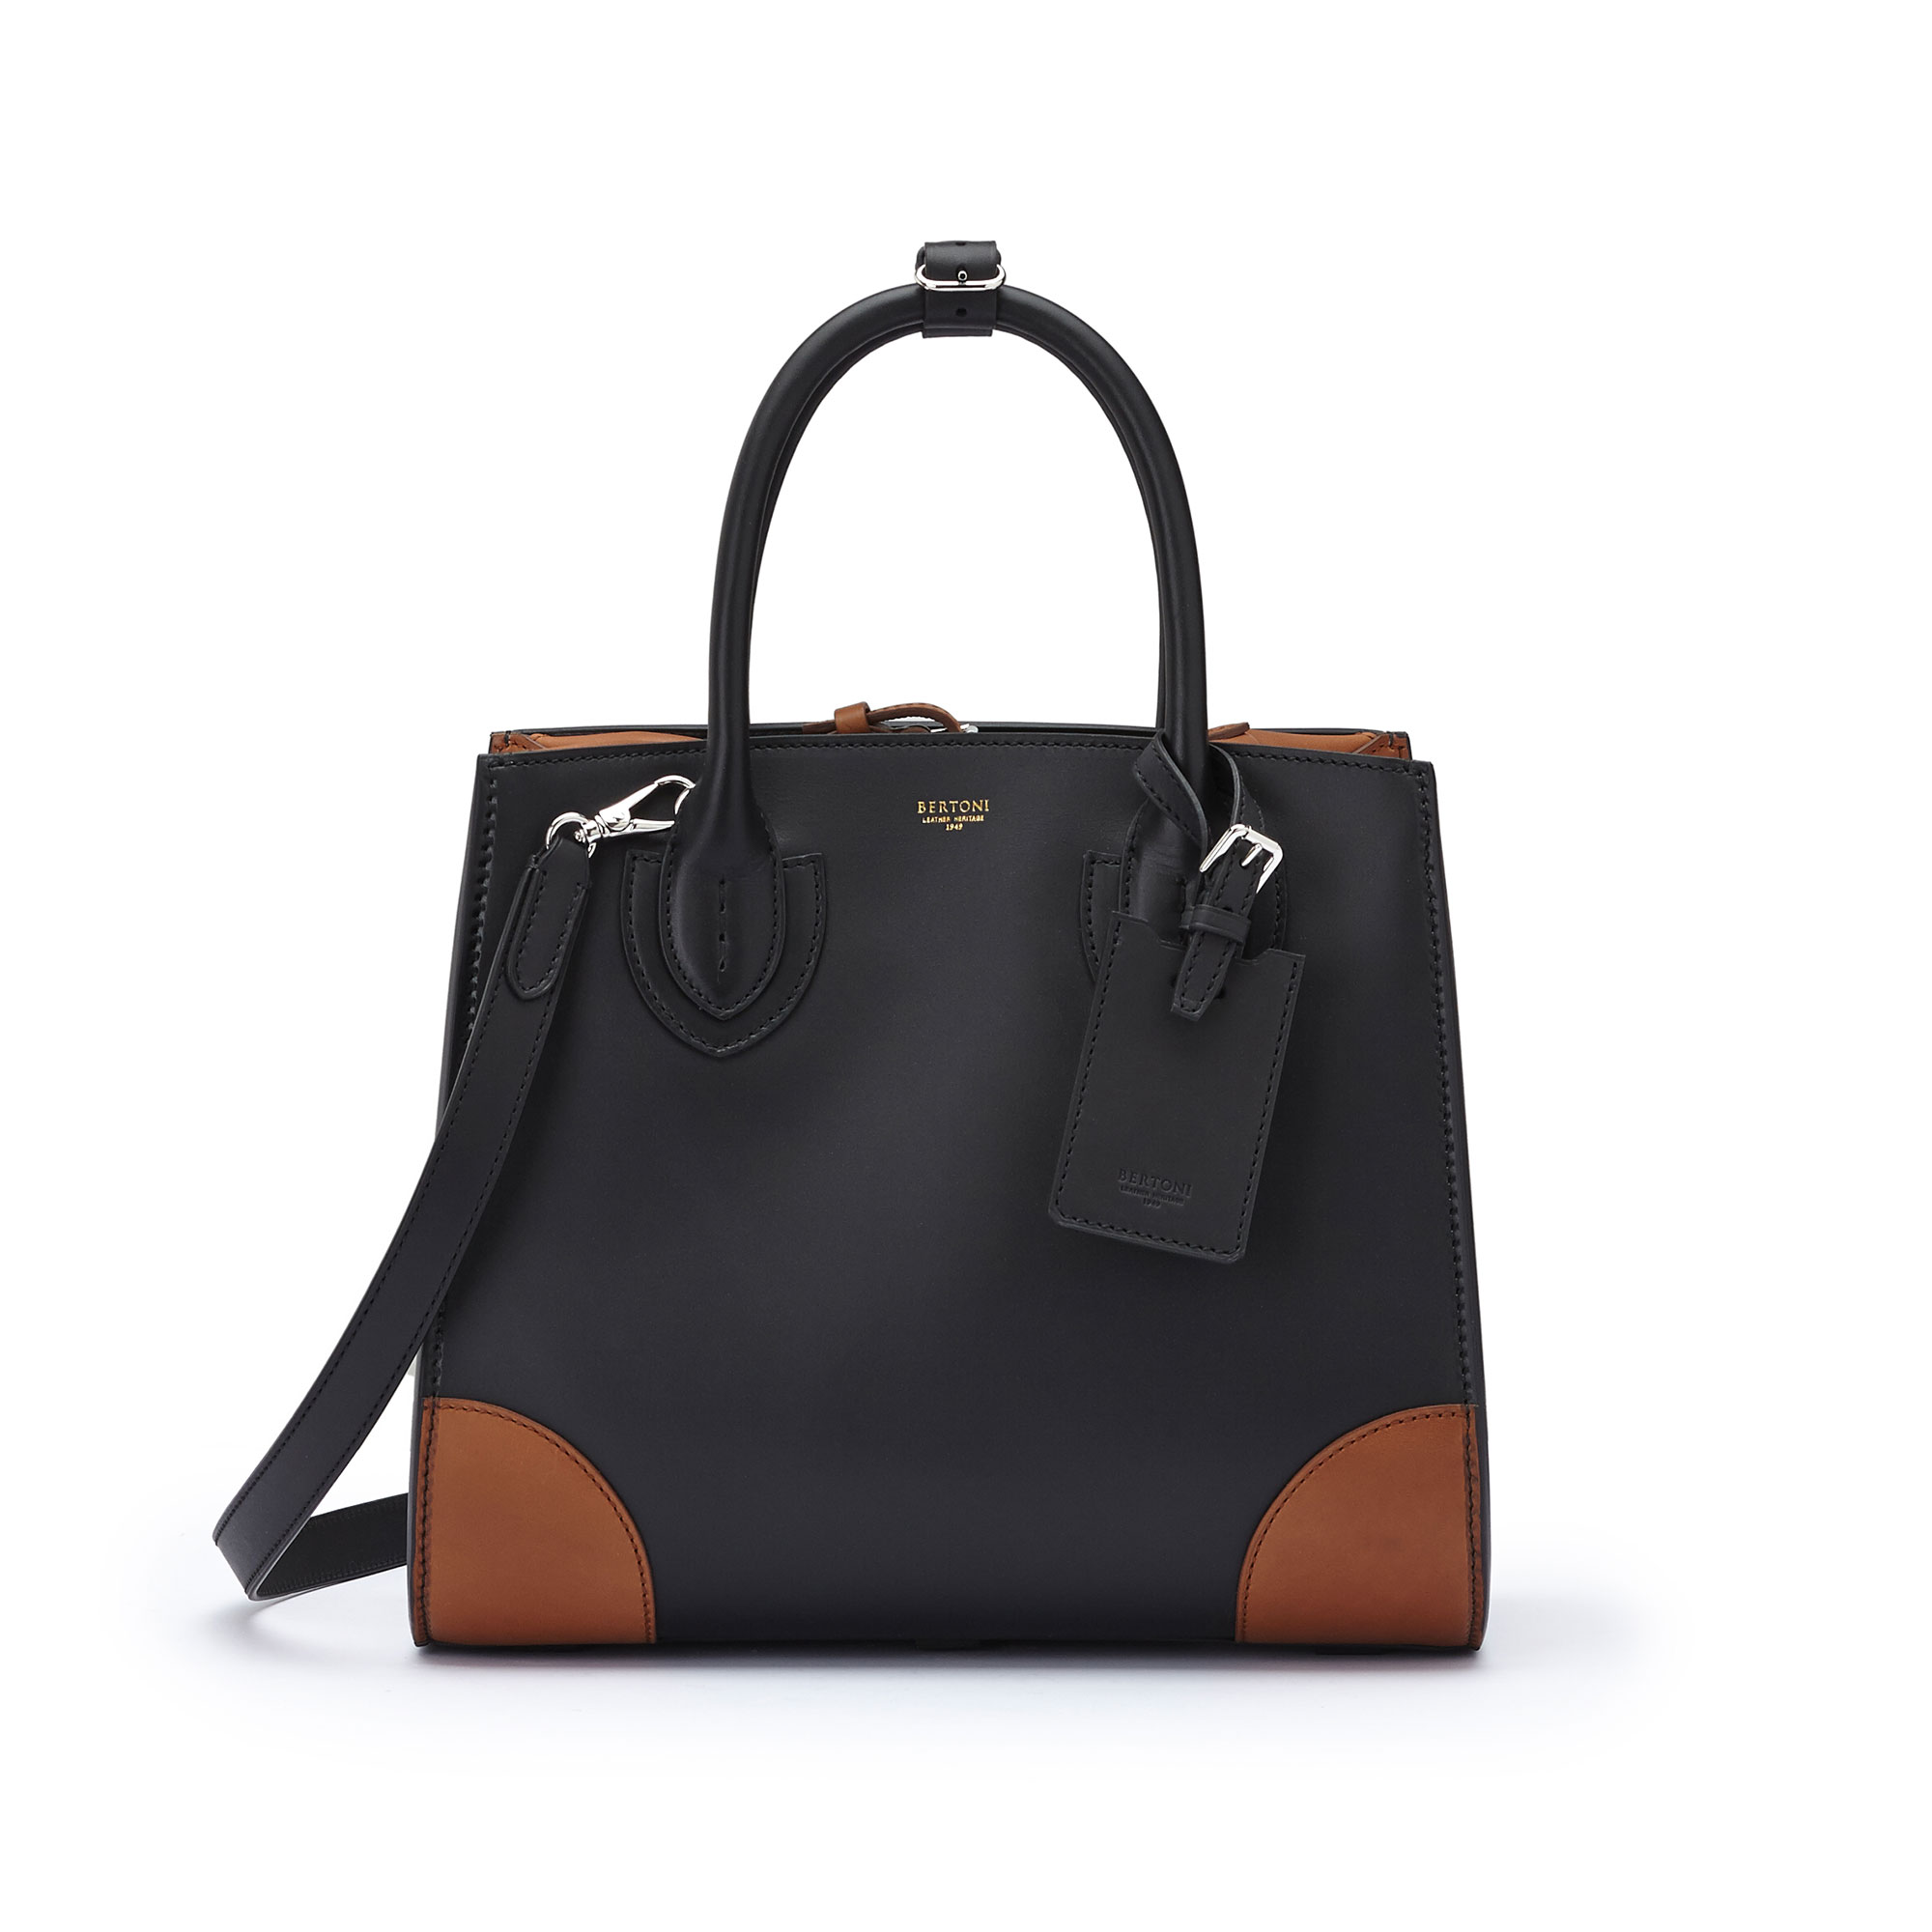 The black and terrabruciata french calf Darcy medium bag by Bertoni 1949 01